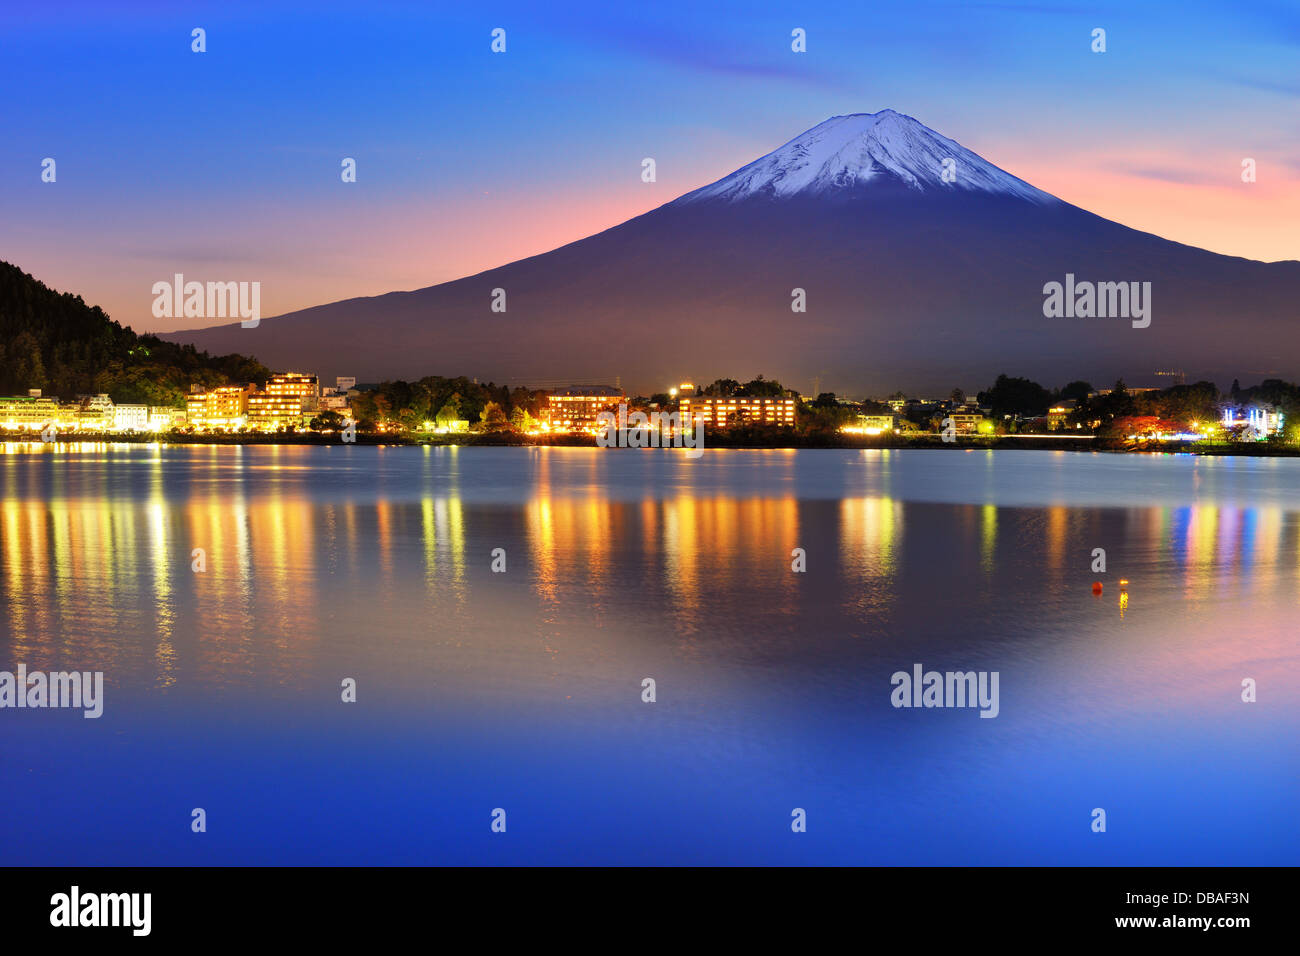 Mt. Fuji with twilight colors in japan. - Stock Image